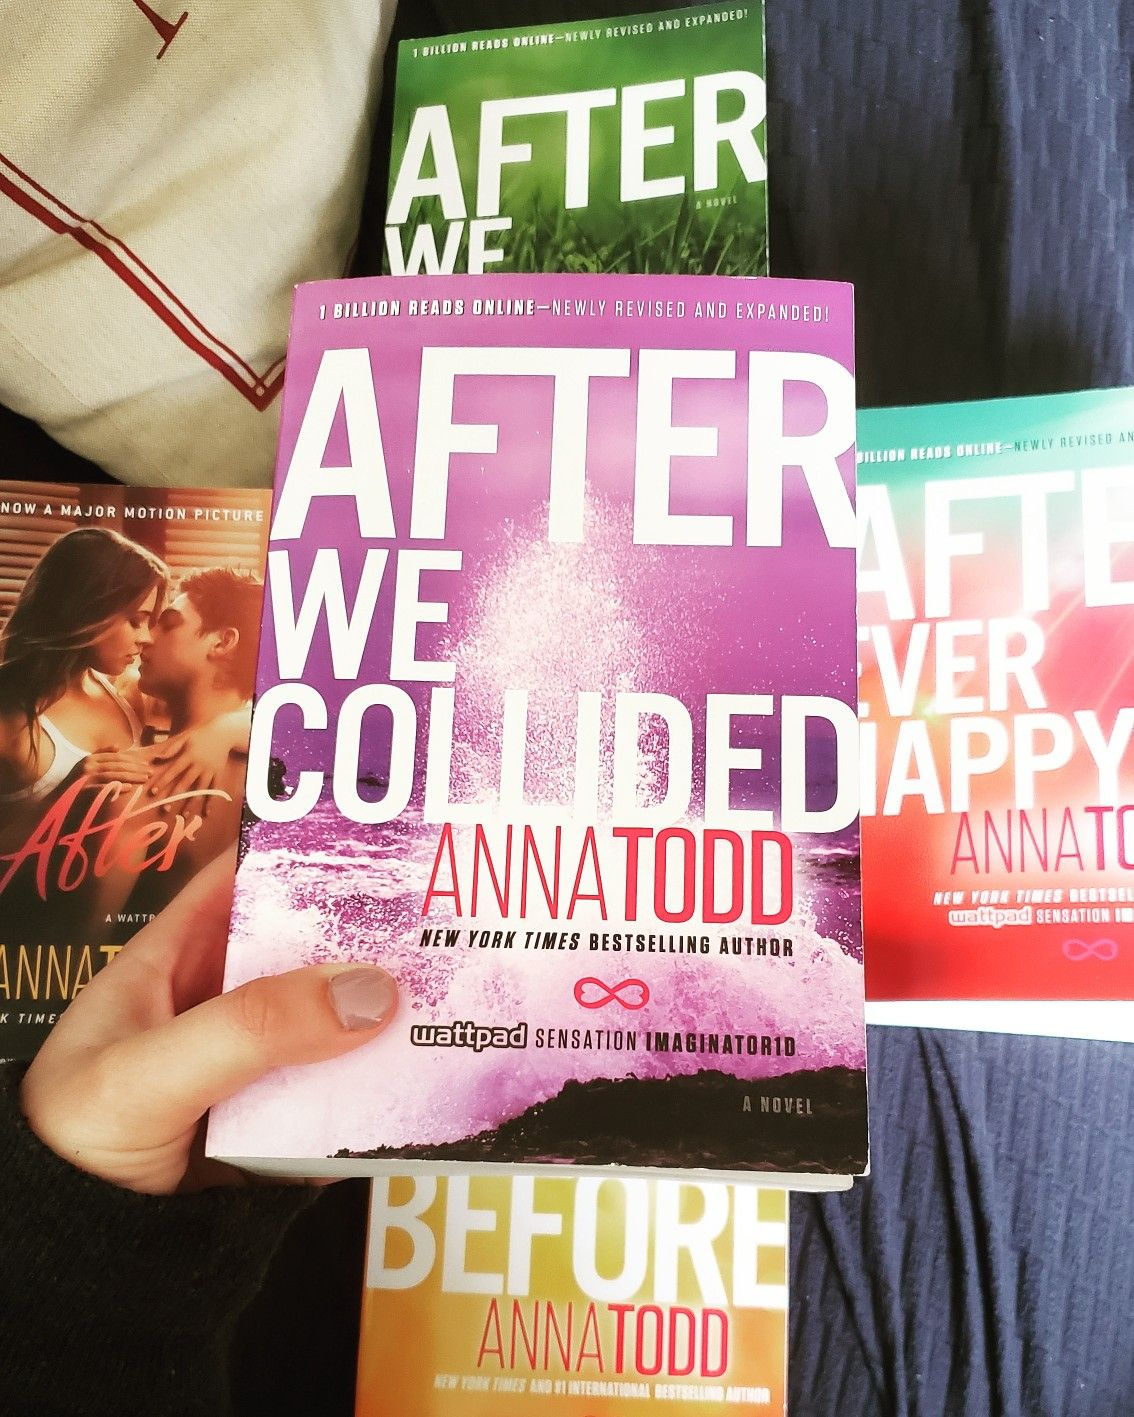 The Second Book In The After Series By Anna Todd Continues The Journey Of Hardin And Tessa After The Knowledge Of Bestselling Author Book Series Motion Picture